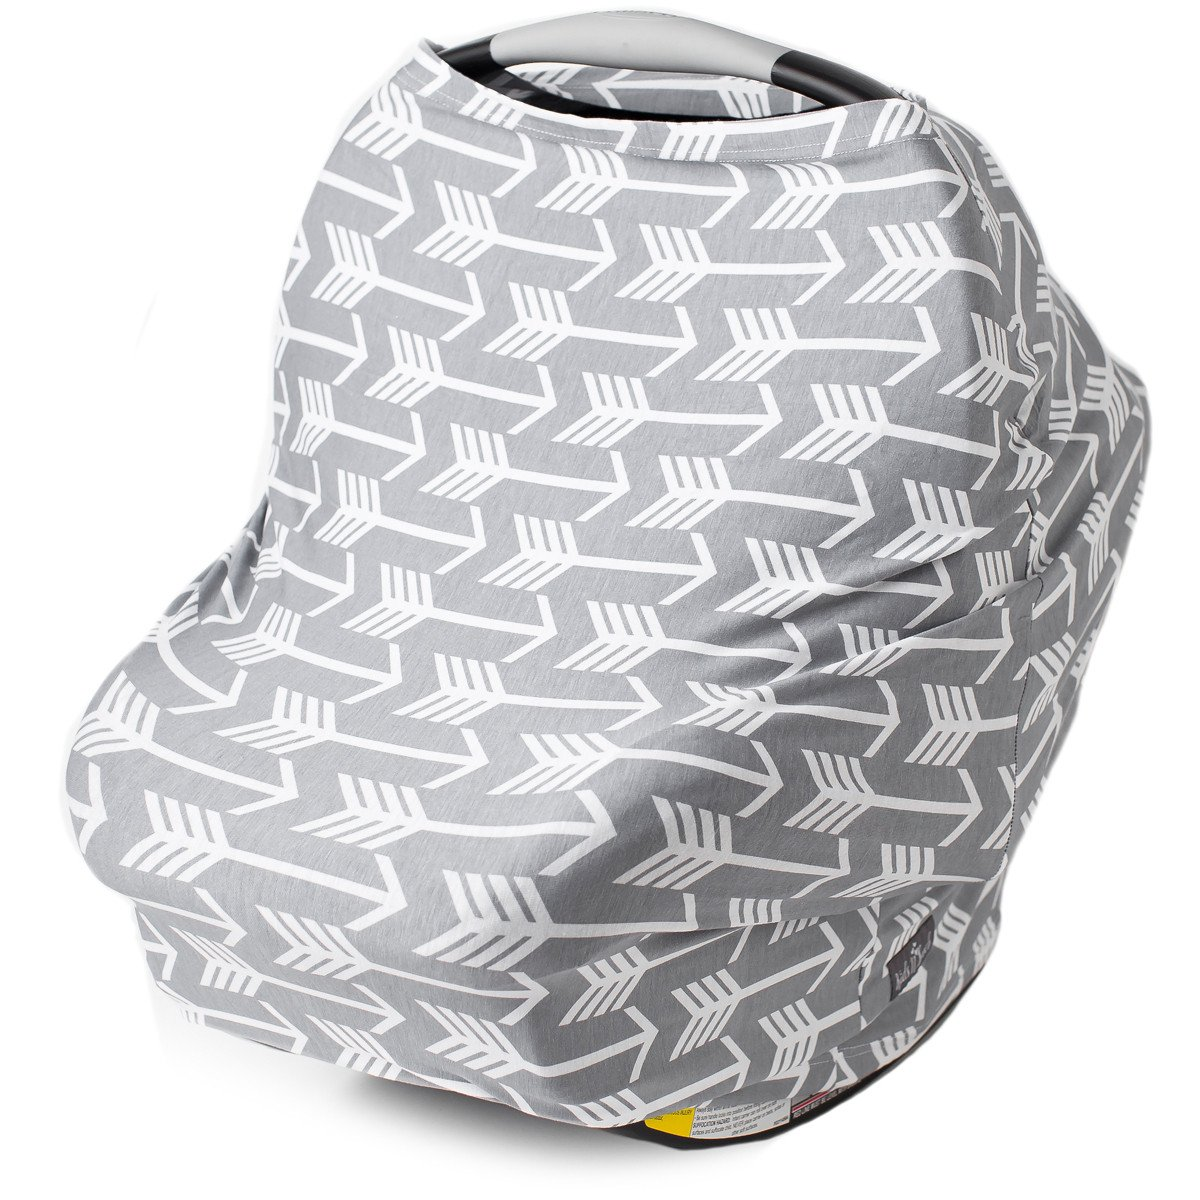 Kids Nu0027 Such Multi Use Car Seat Canopy Nursing Cover Shopping Cart Cover  sc 1 st  Walmart & Kids Nu0027 Such Multi Use Car Seat Canopy Nursing Cover Shopping ...